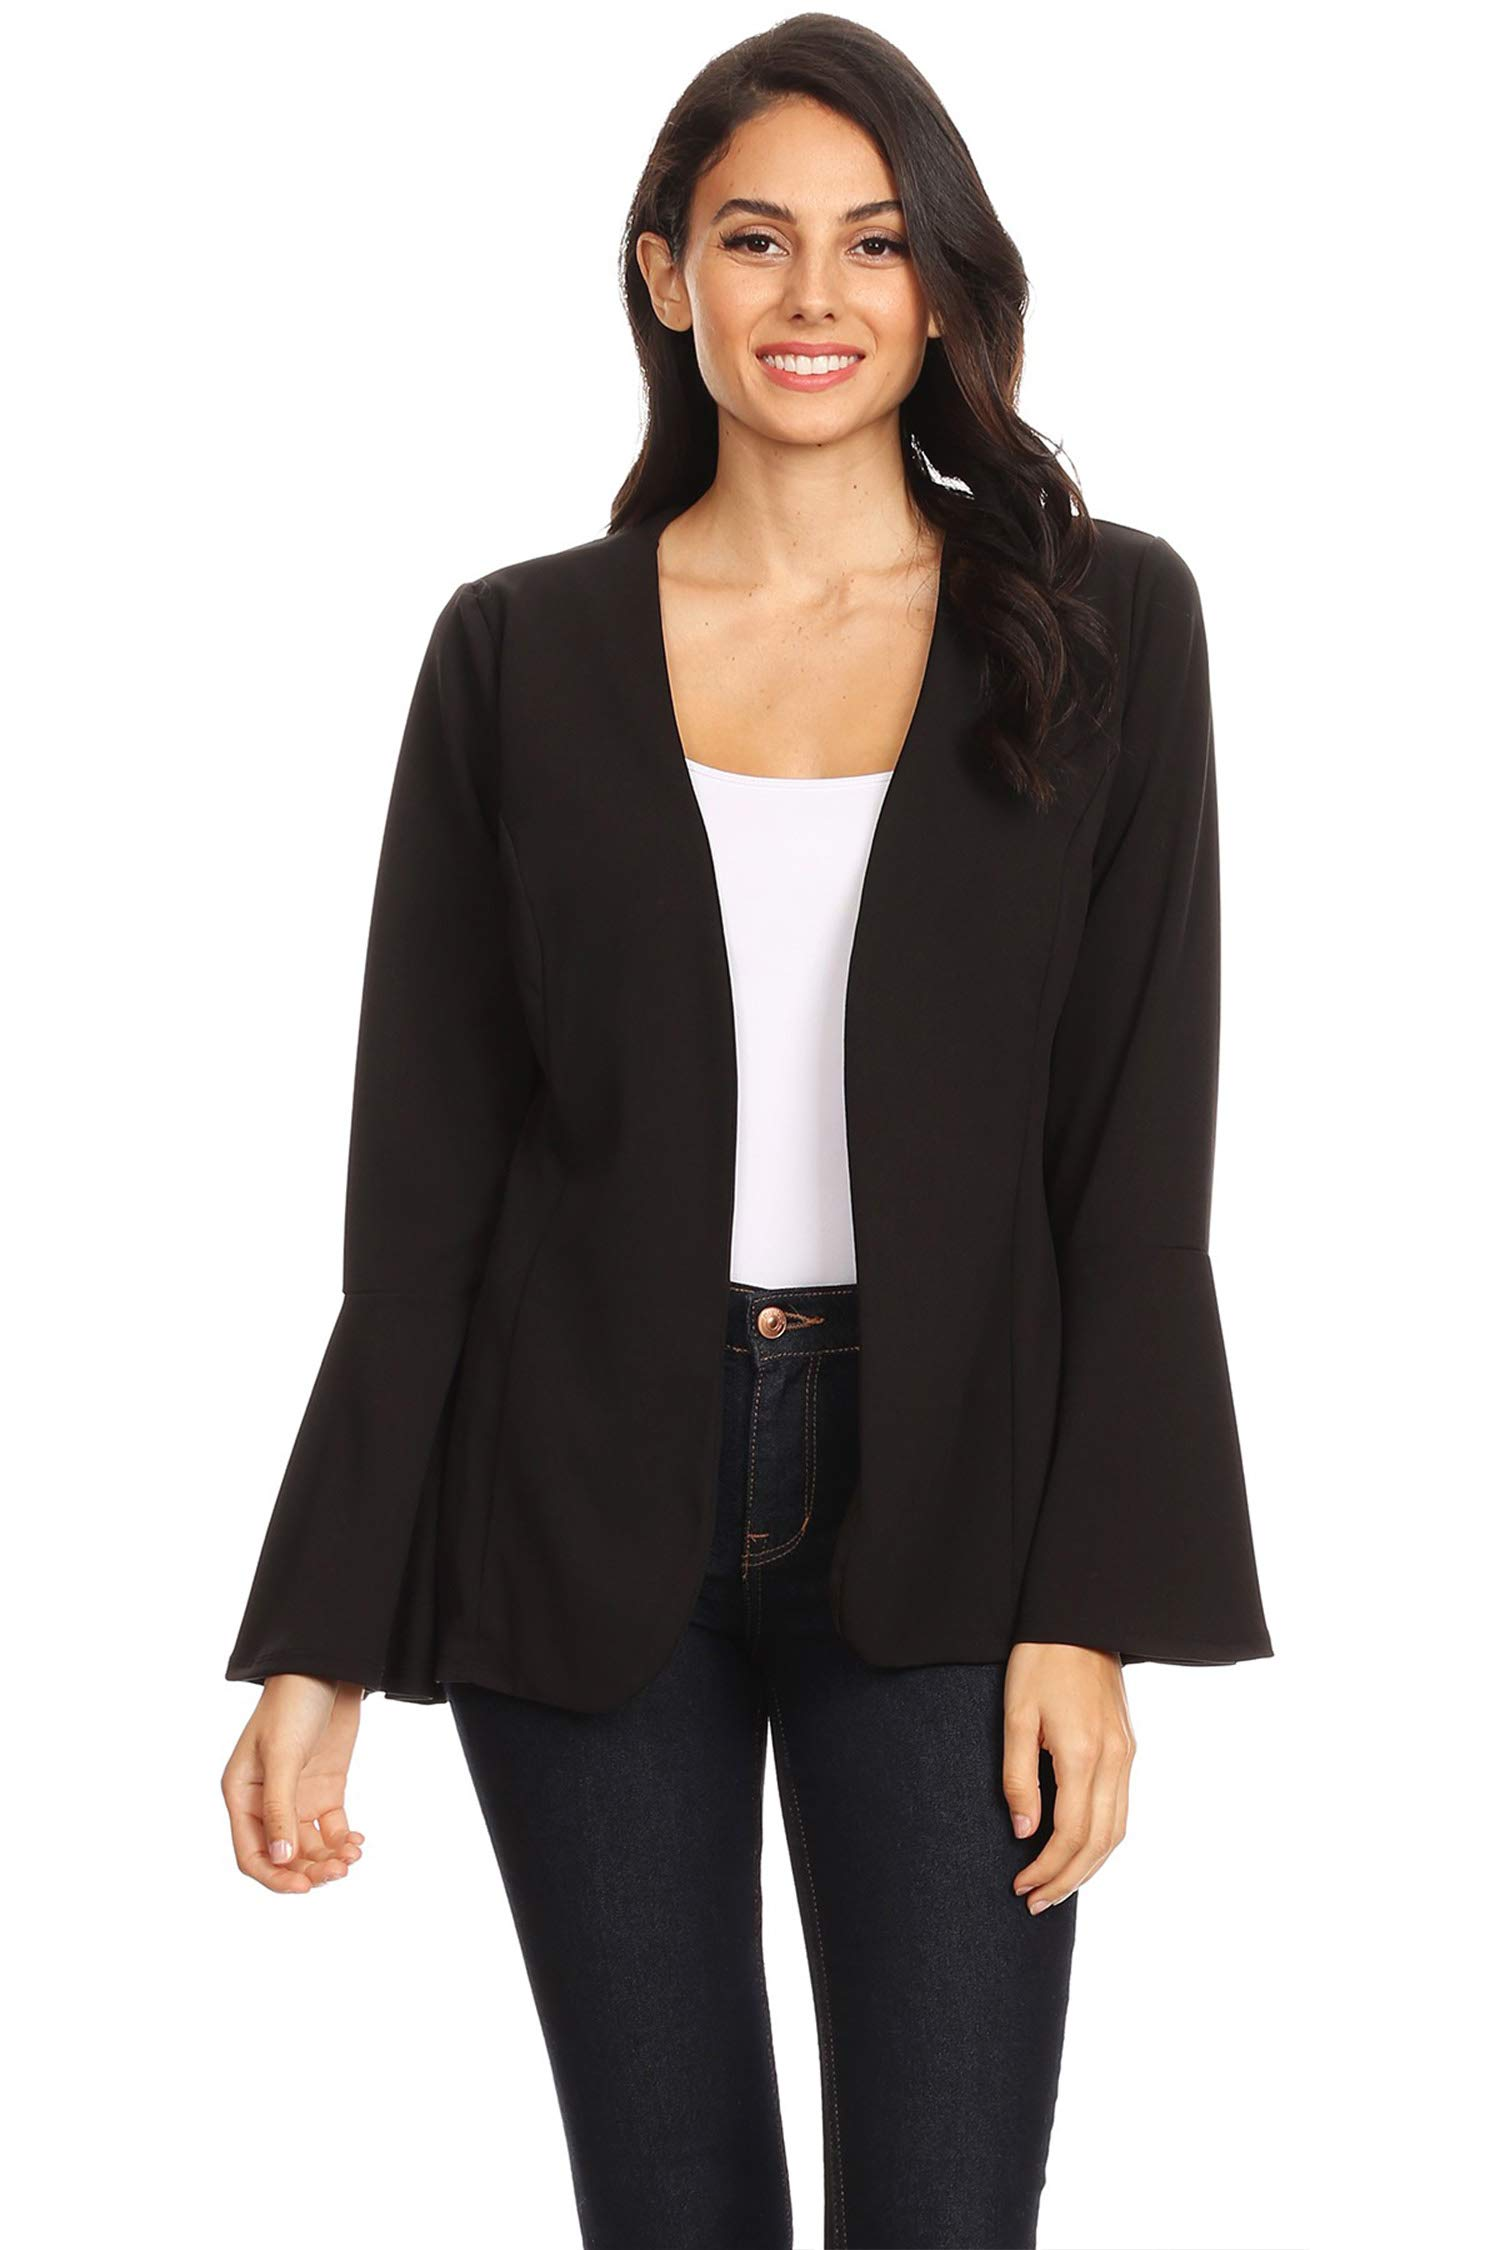 Casual Solid Loose Bell Sleeve Draped Front Blazer Cardigan/Made in USA Black 2XL